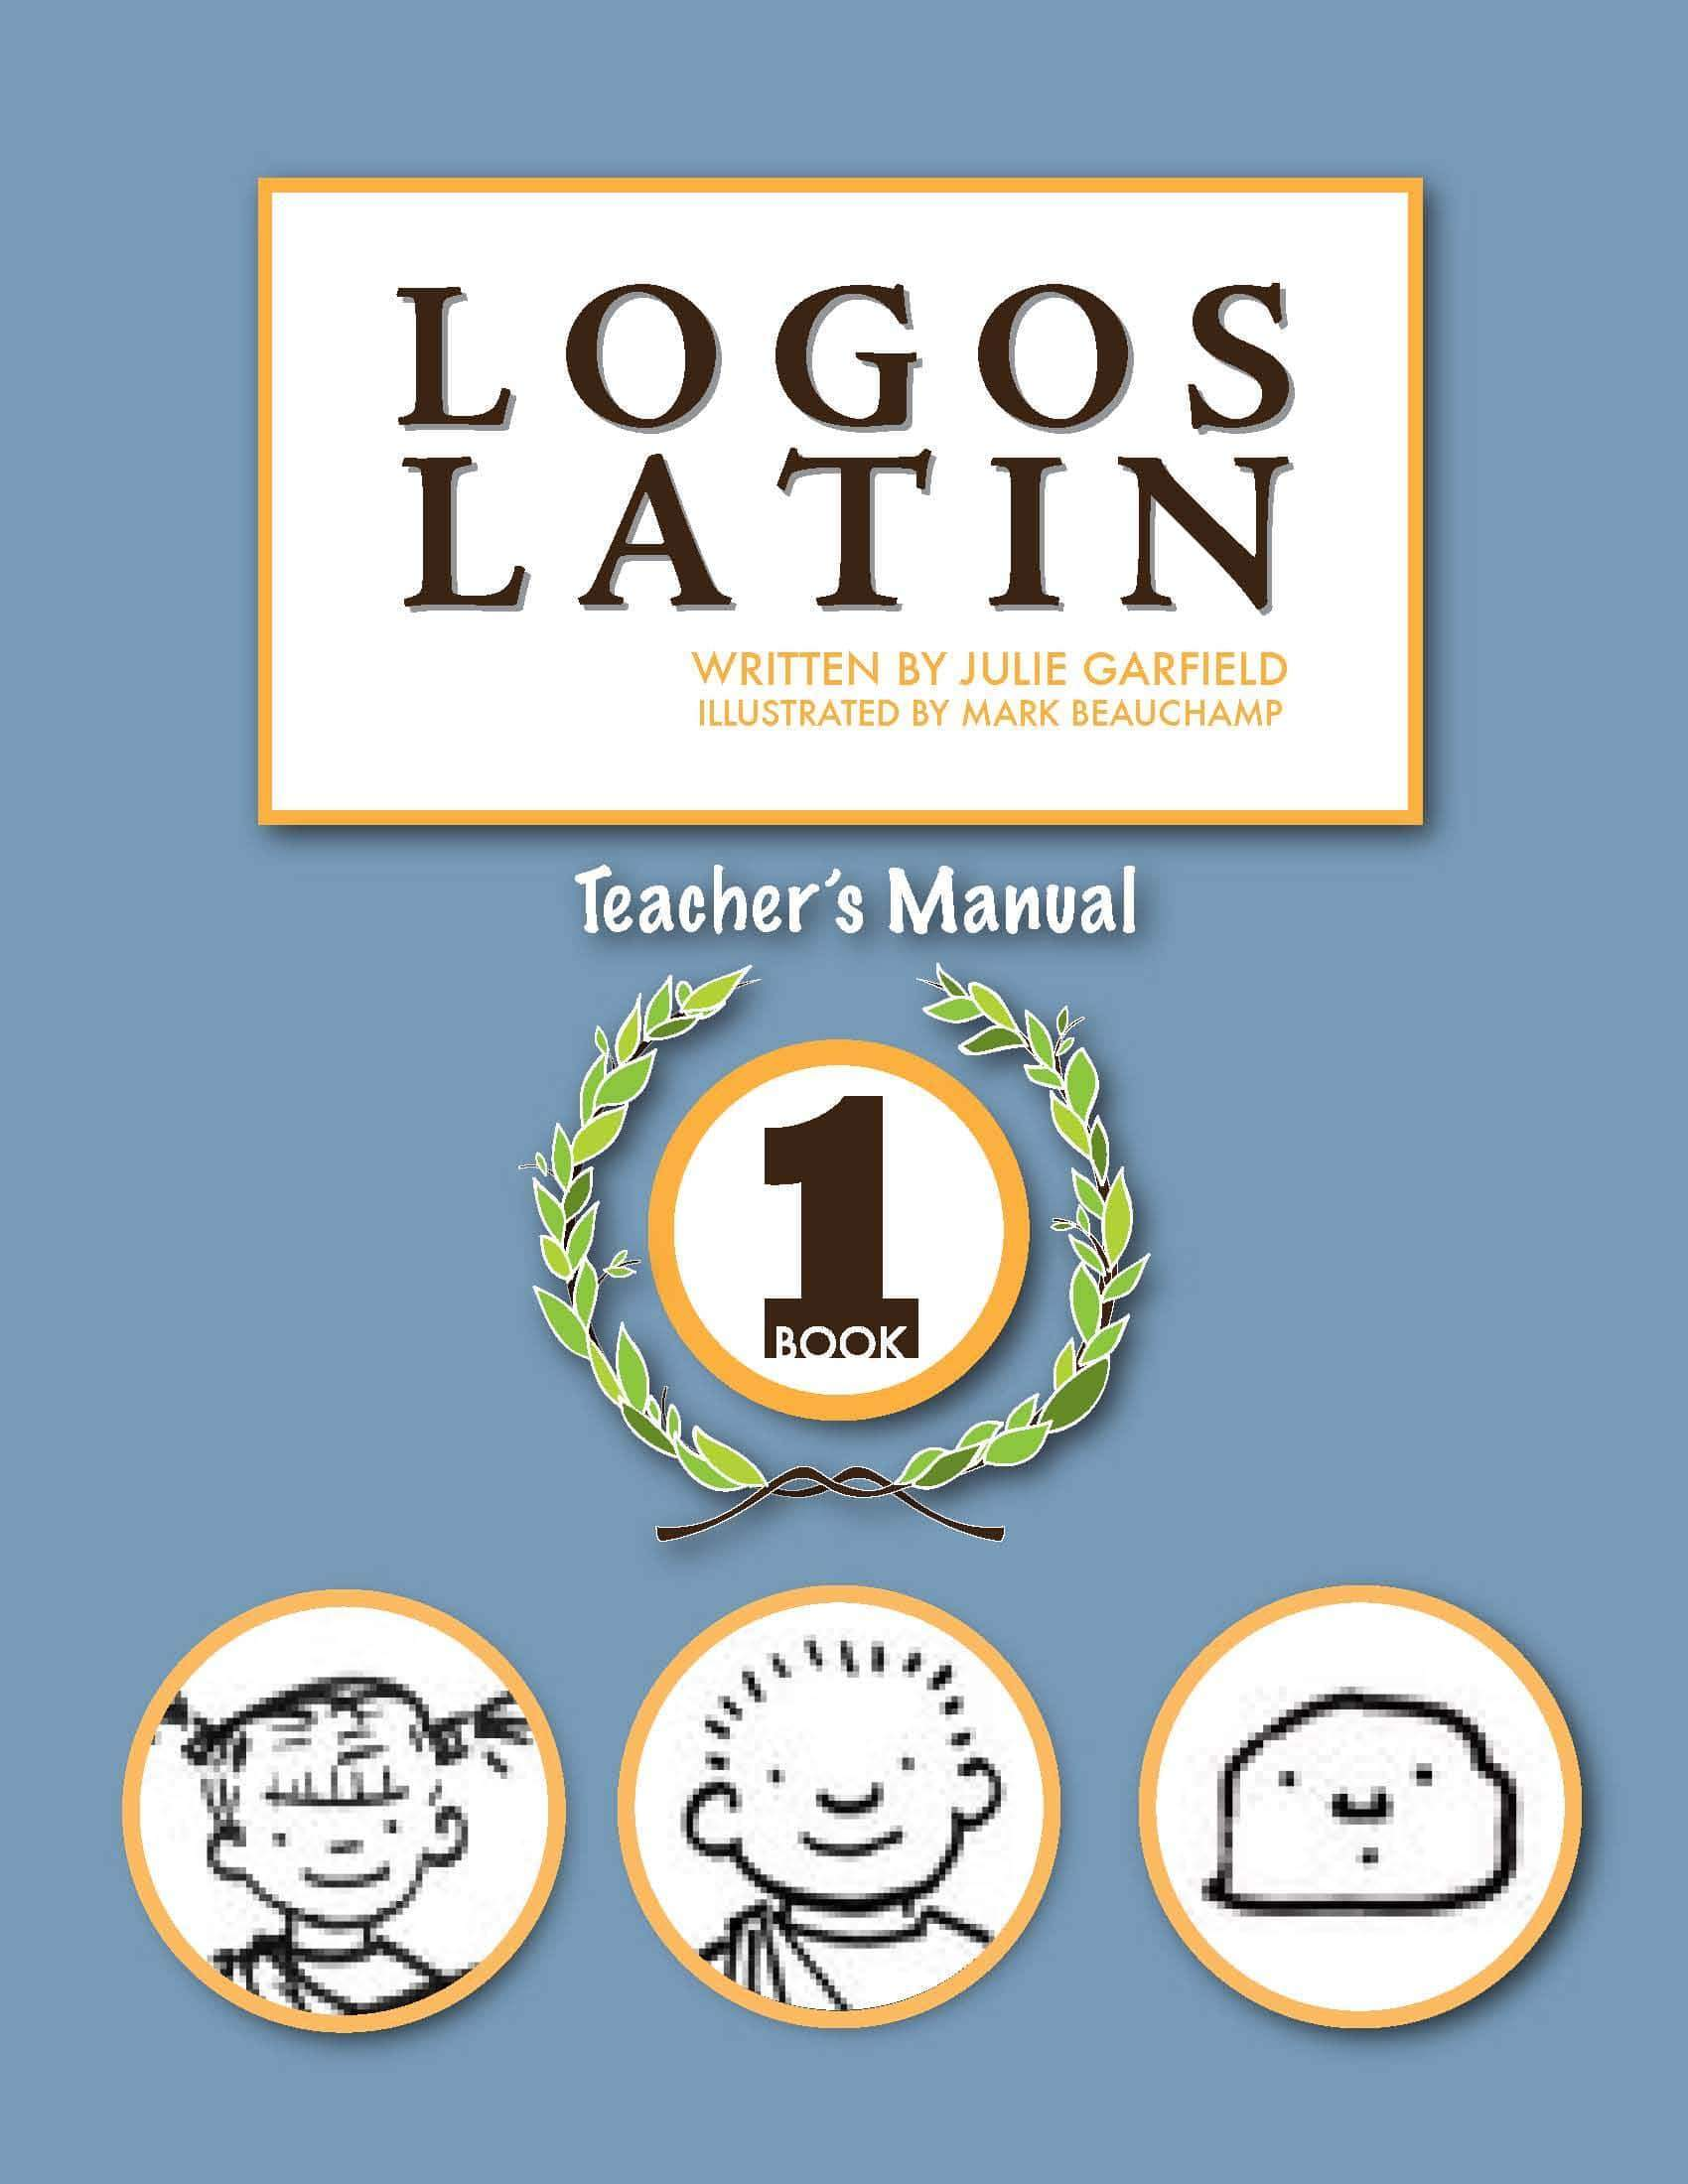 Logos Latin 1 Teacher's Manual